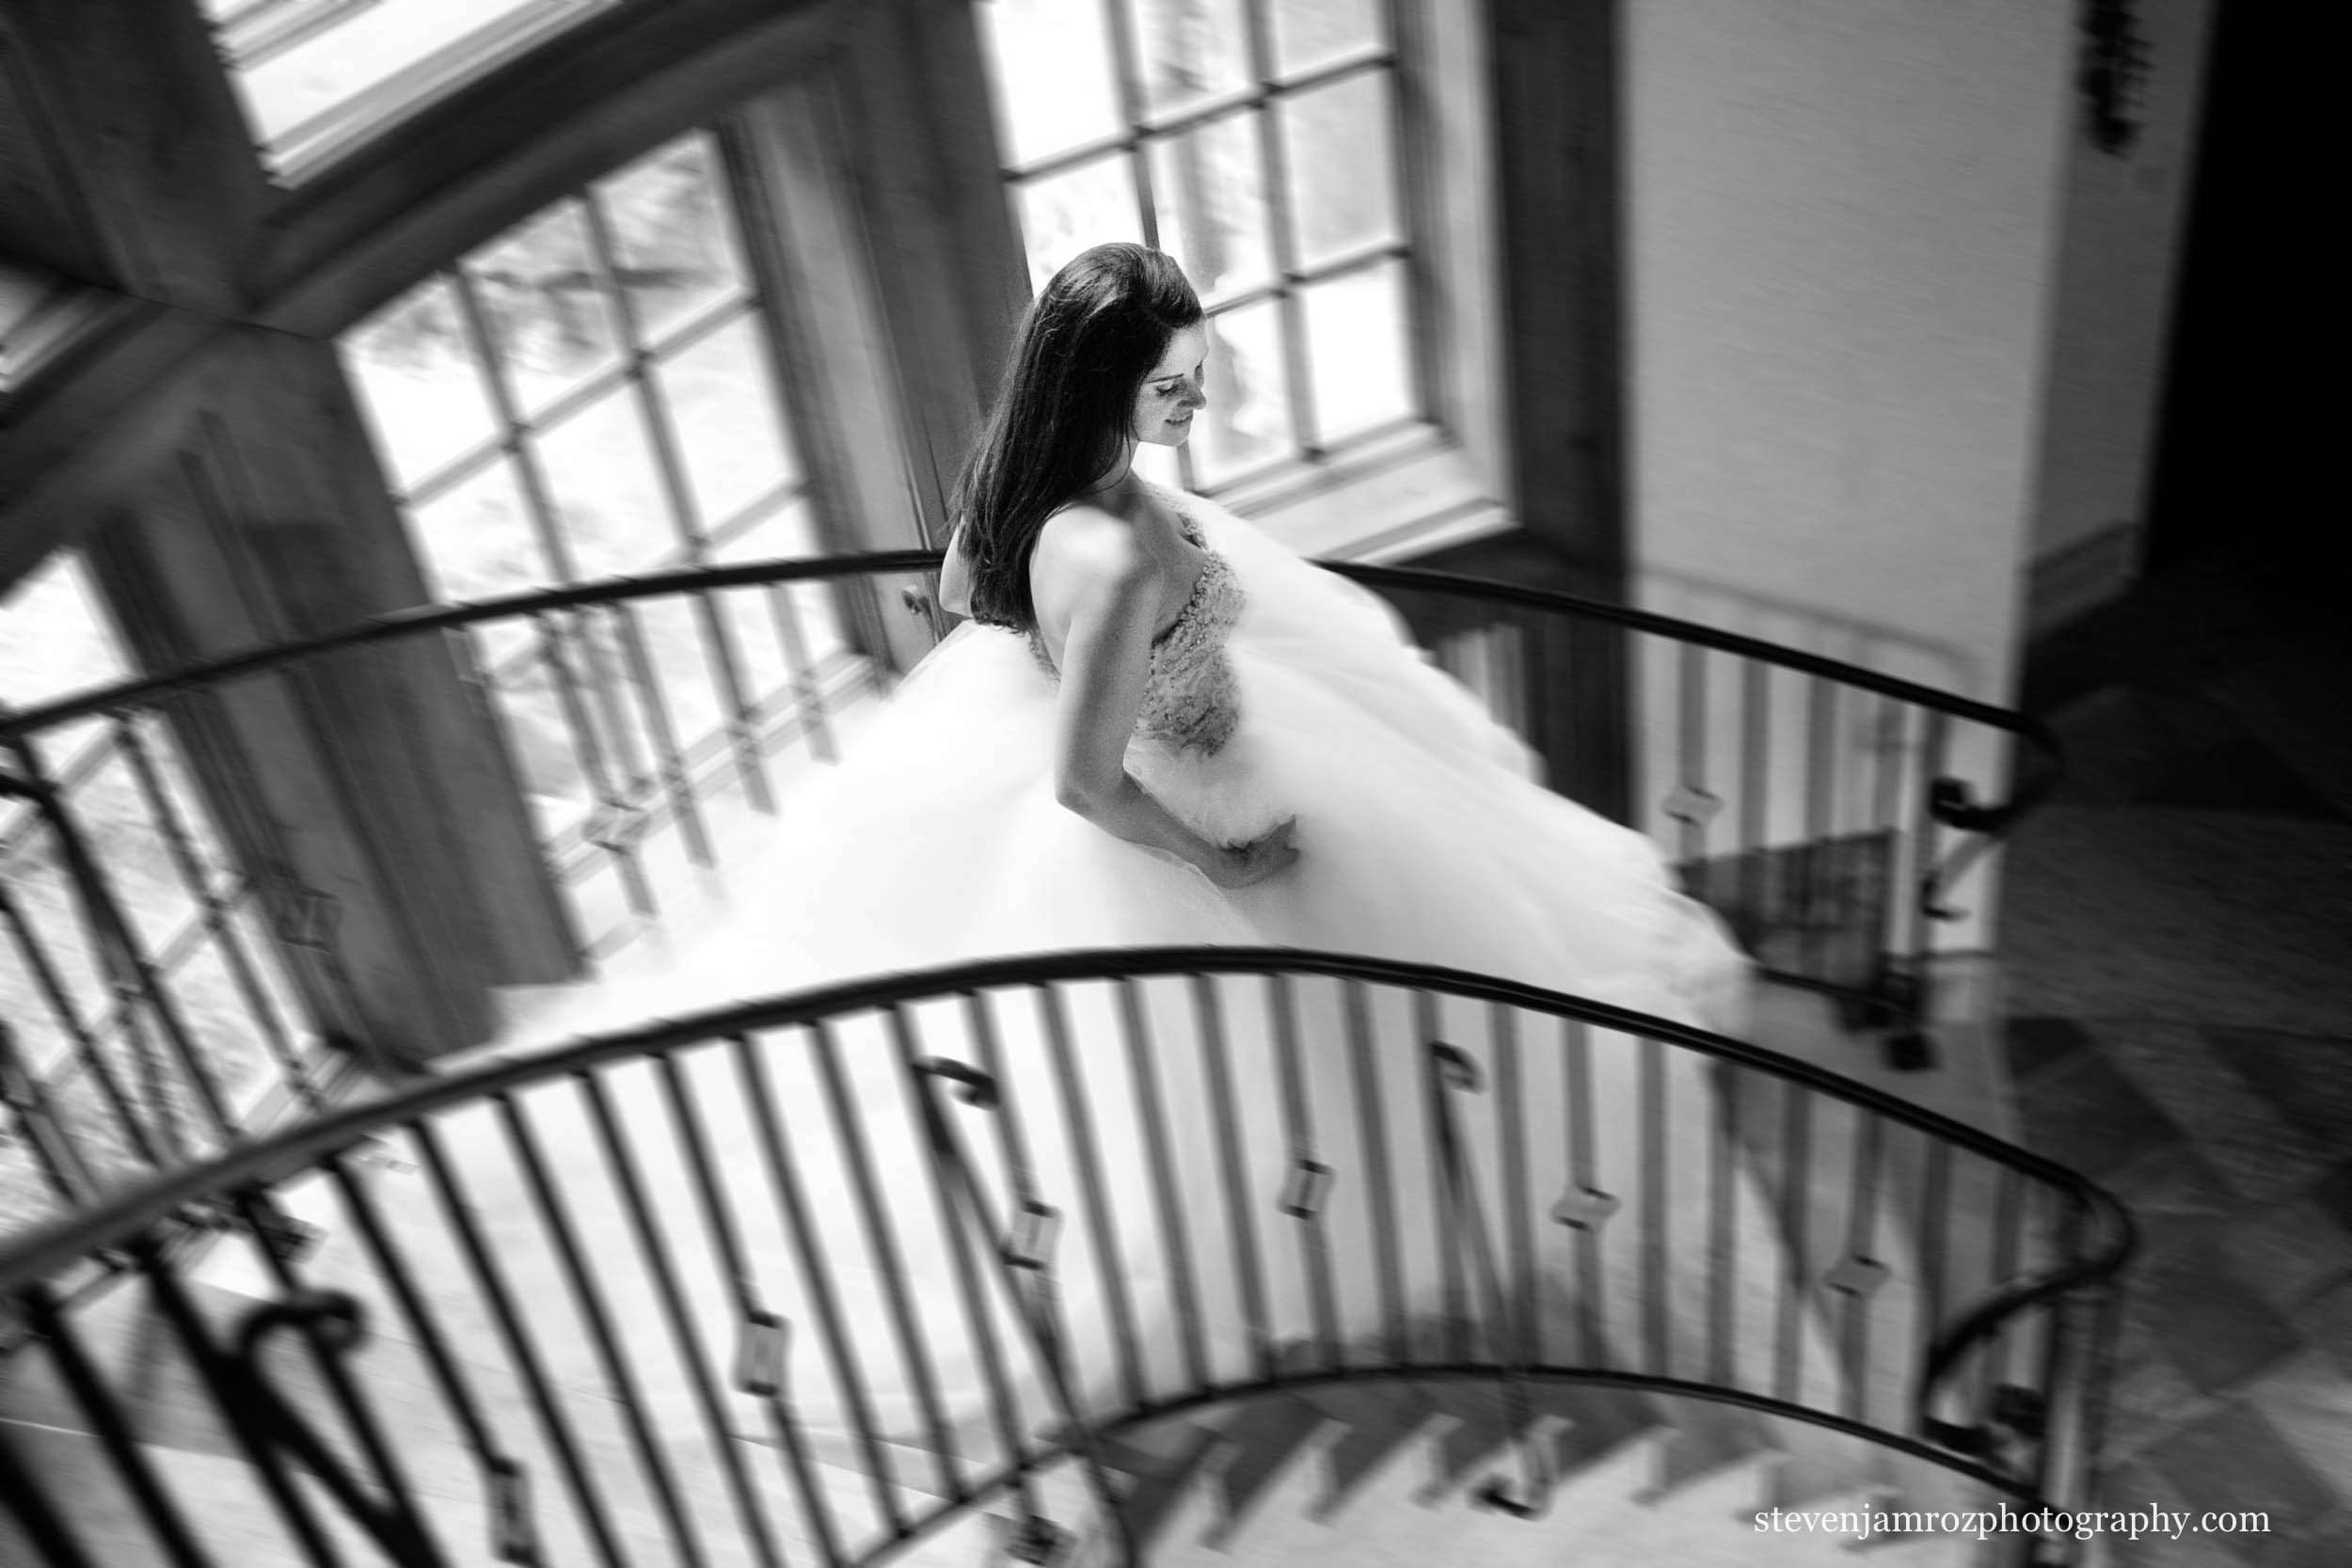 staircase-wedding-raleigh-steven-jamroz-photography-0246.jpg